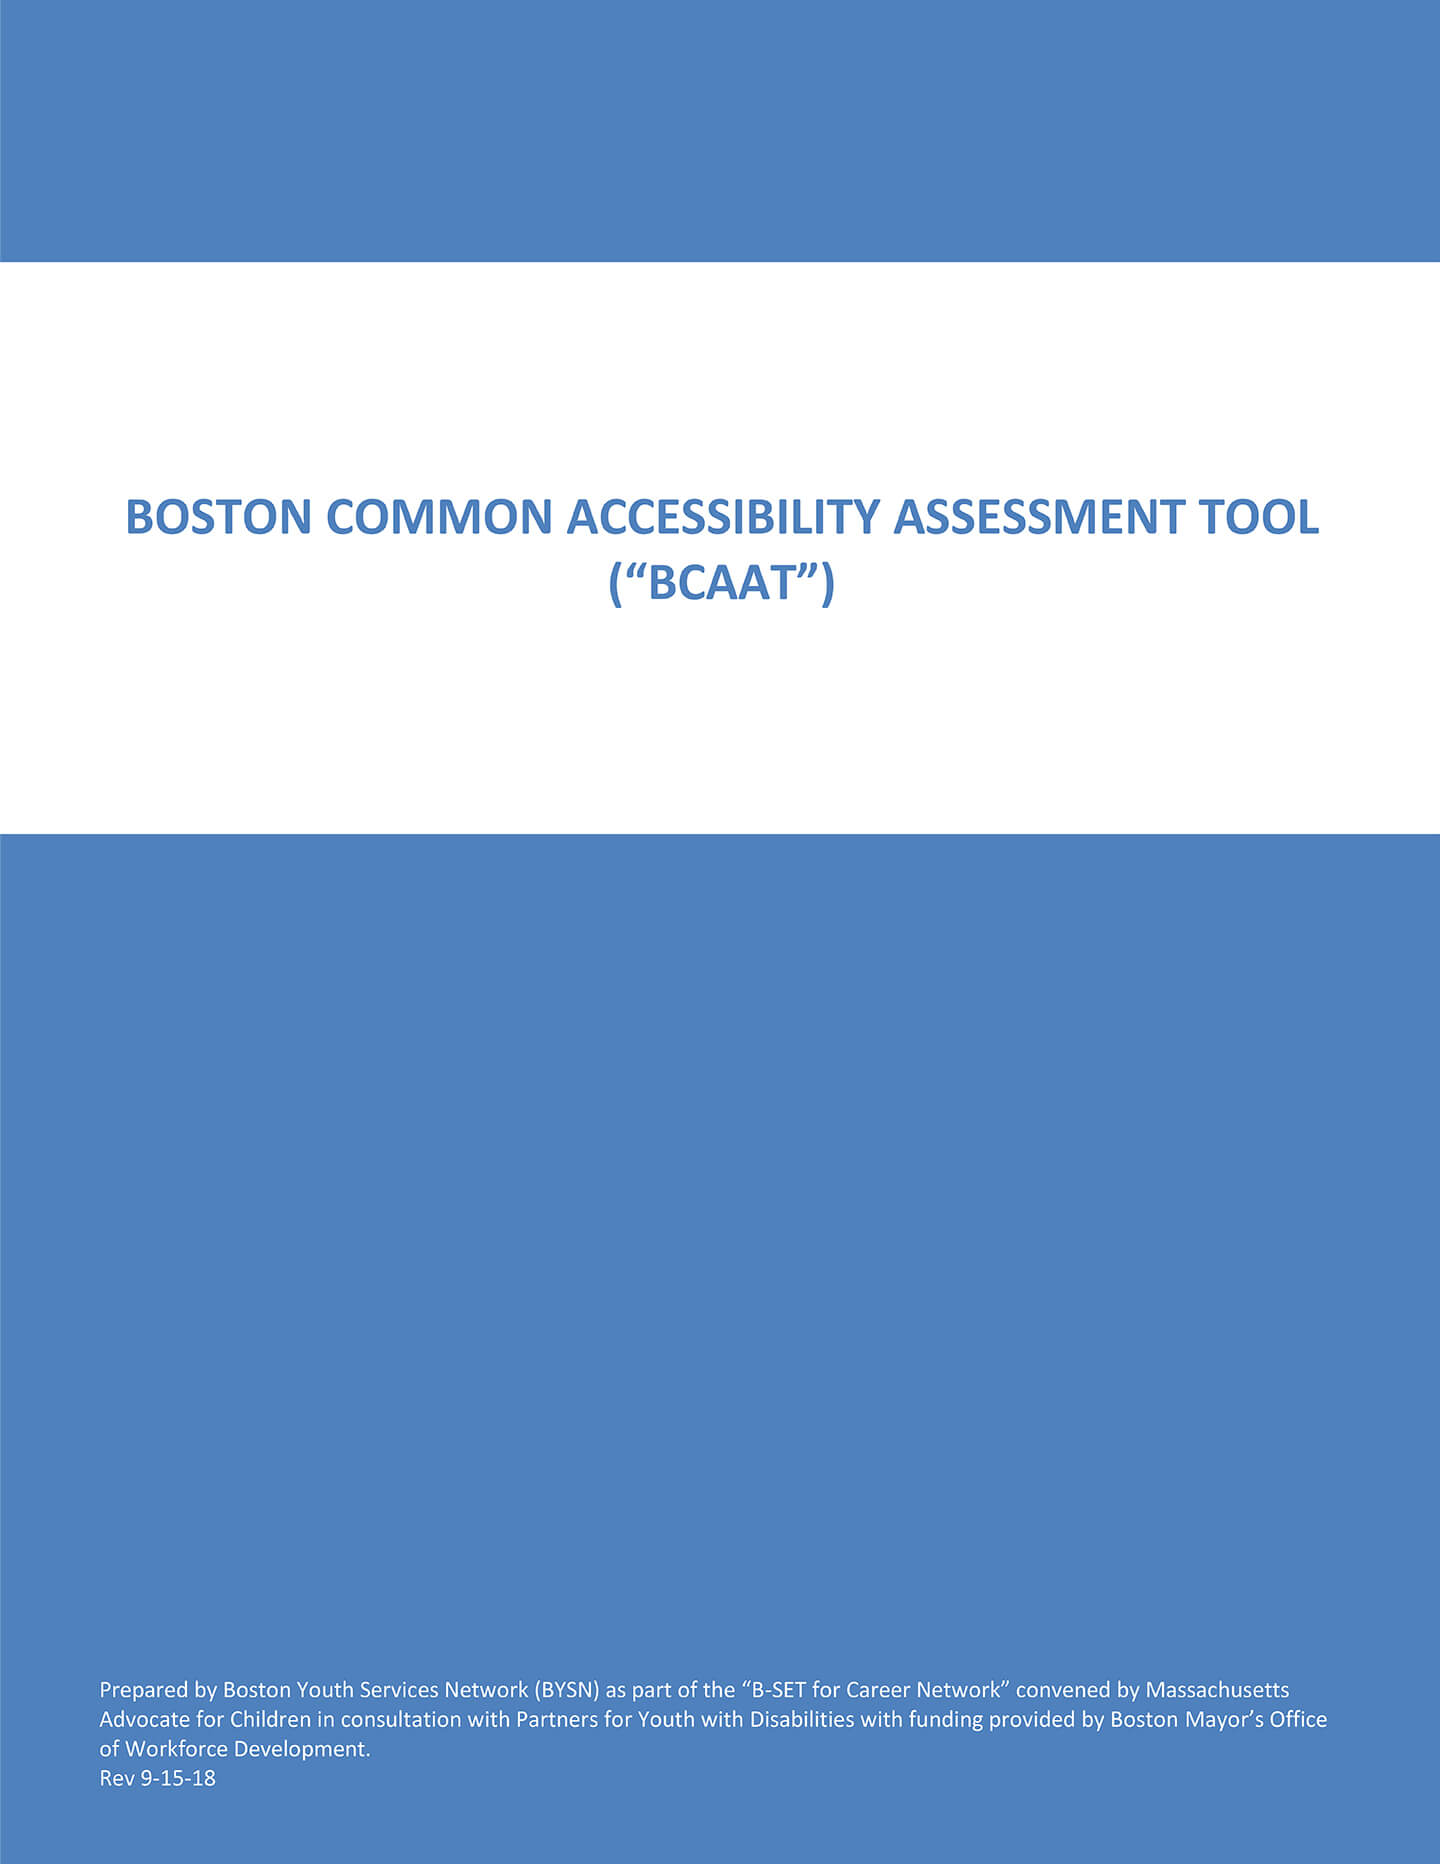 Boston Common Accessibility Assessment Tool (BCAAT)